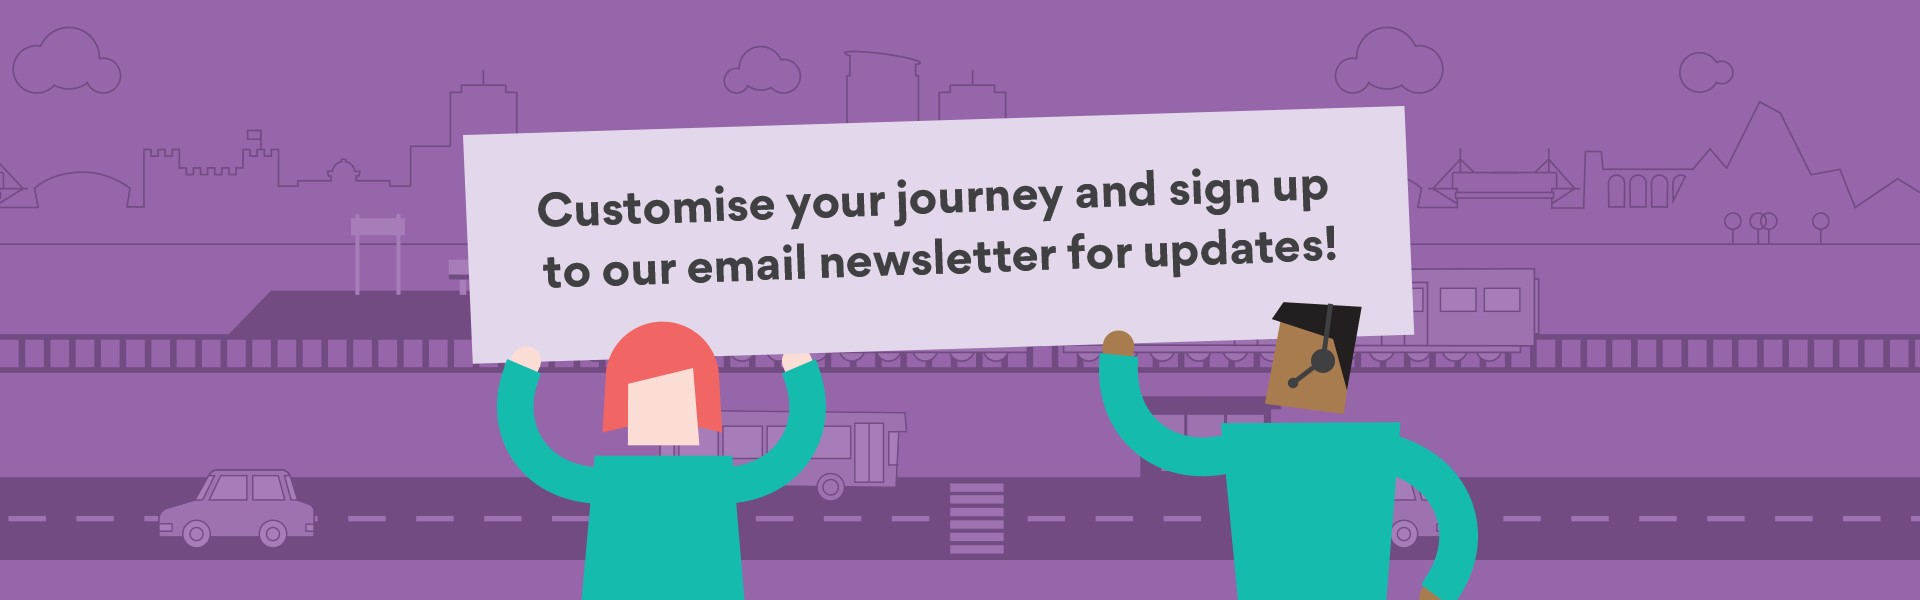 Customise your journey and sign up to our email newsletter for updates!